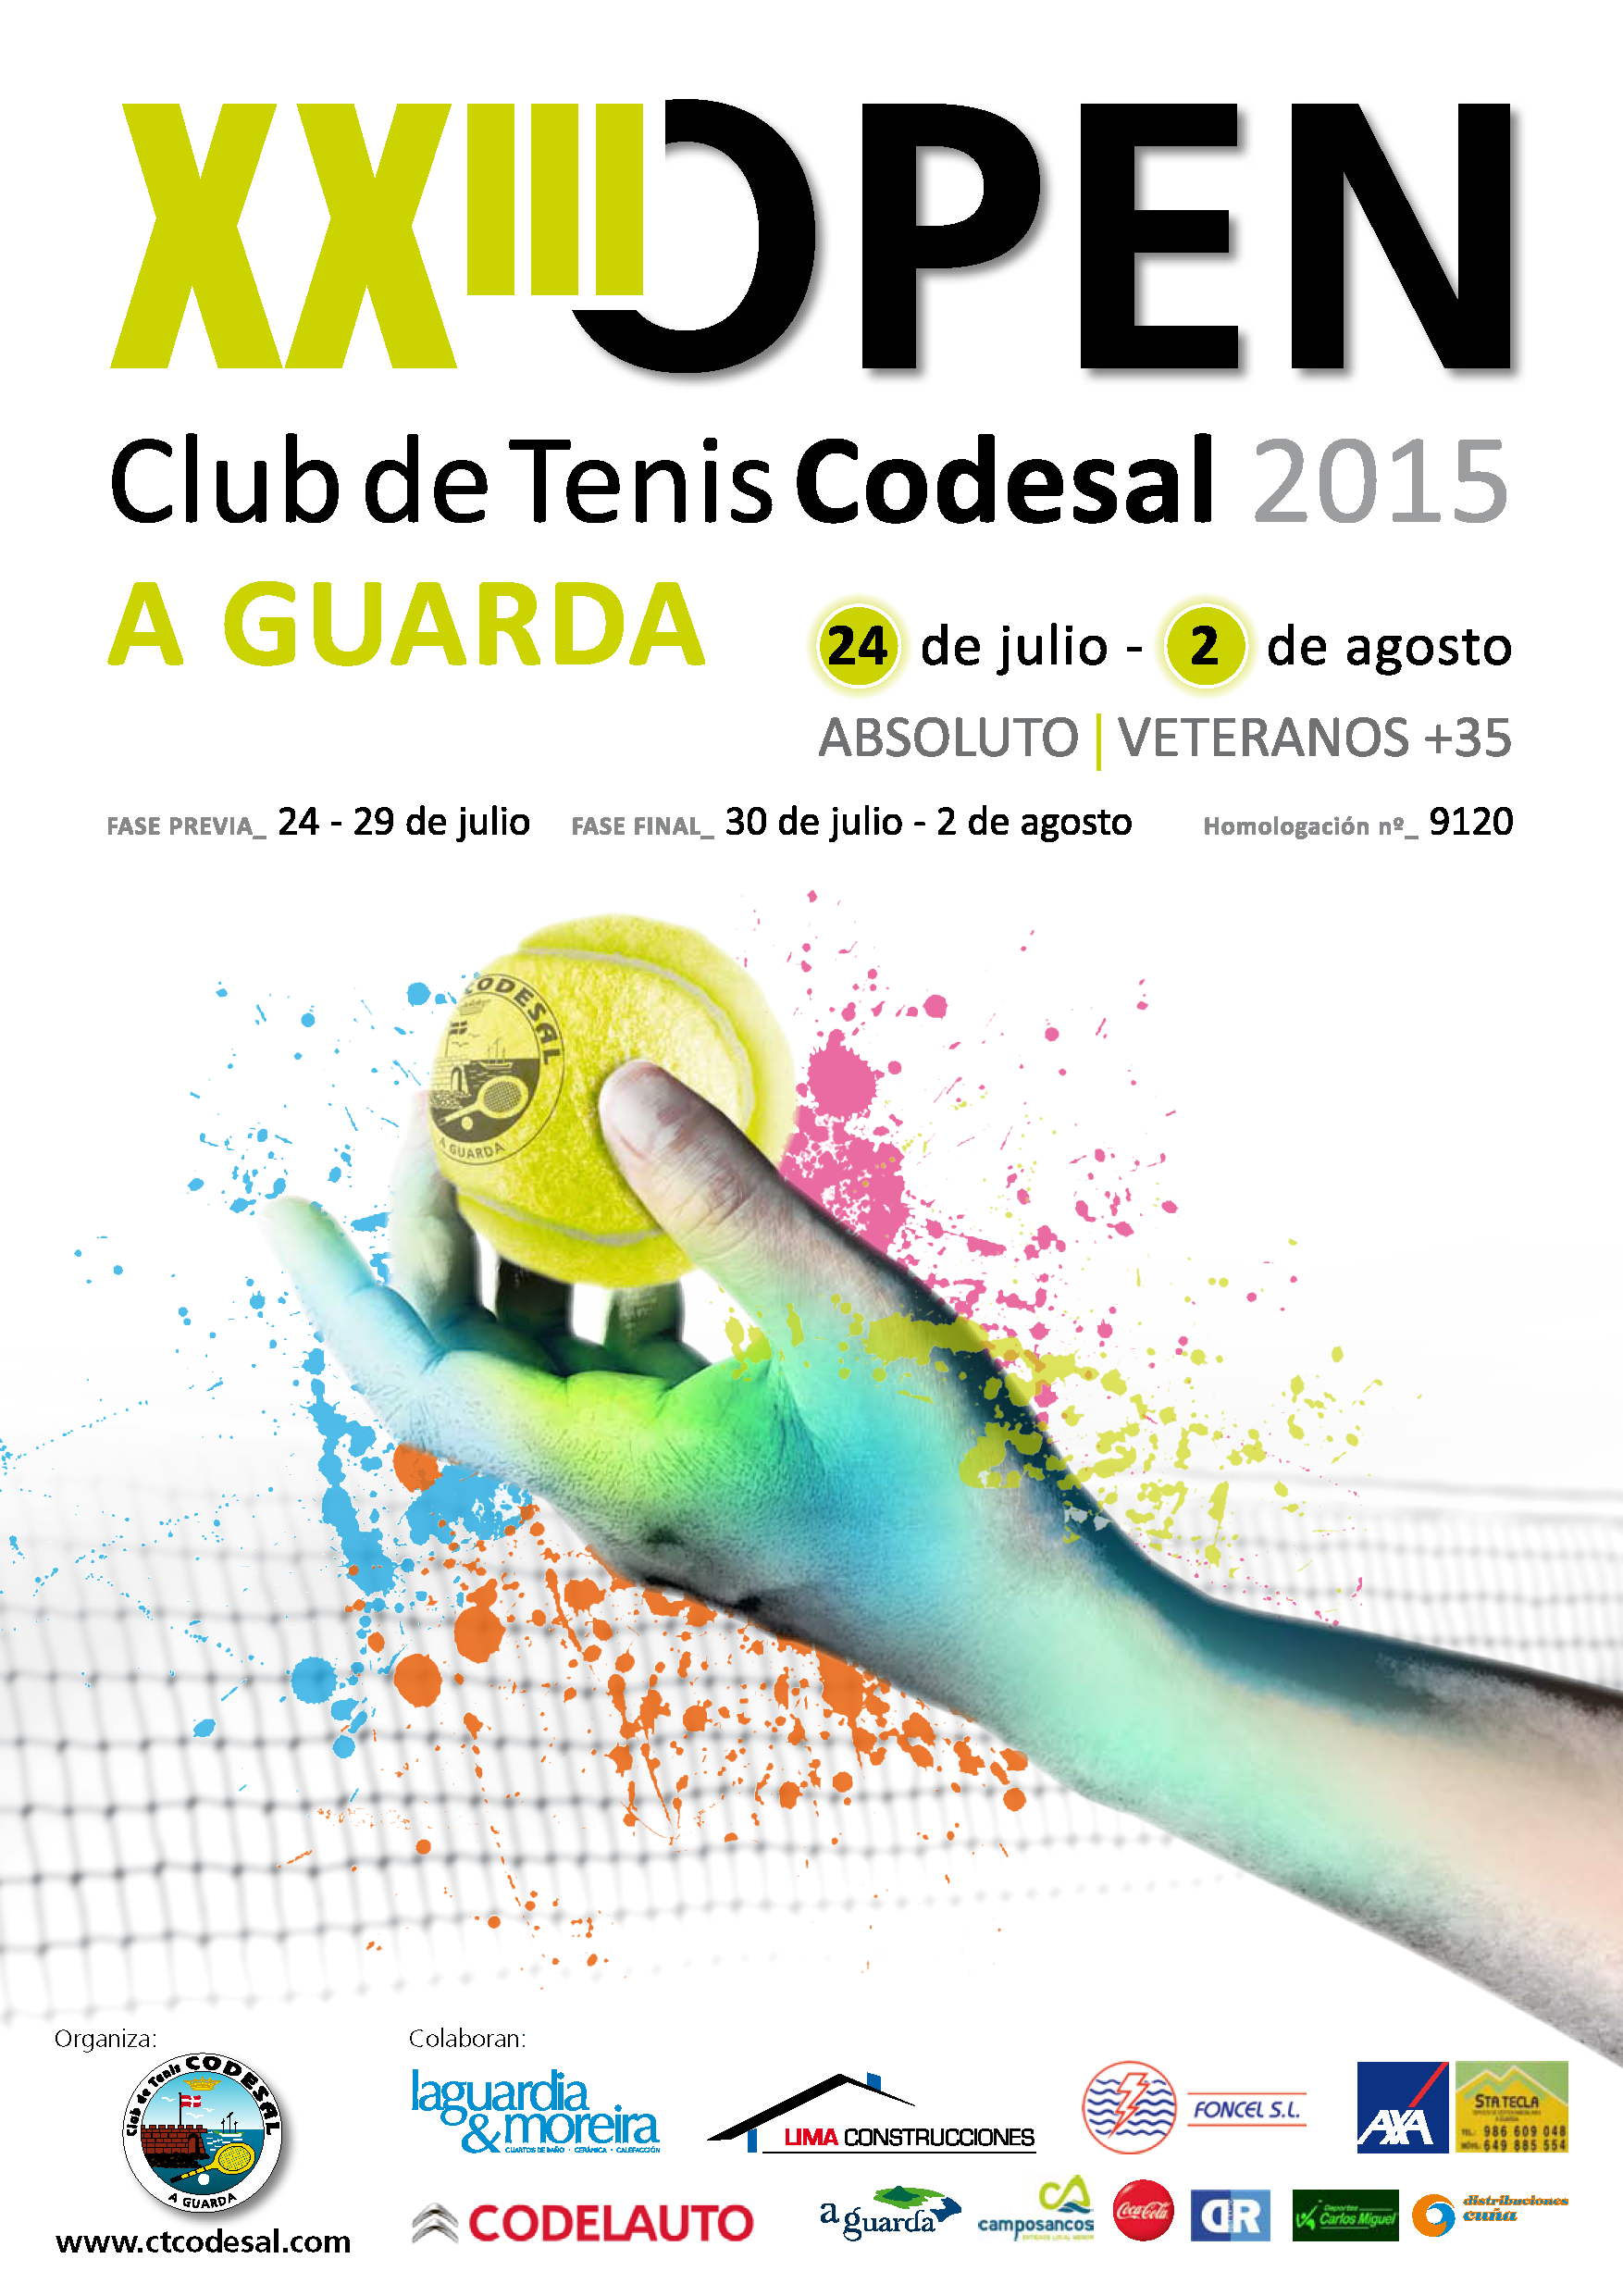 XXIII OPEN Club de Tenis CODESAL